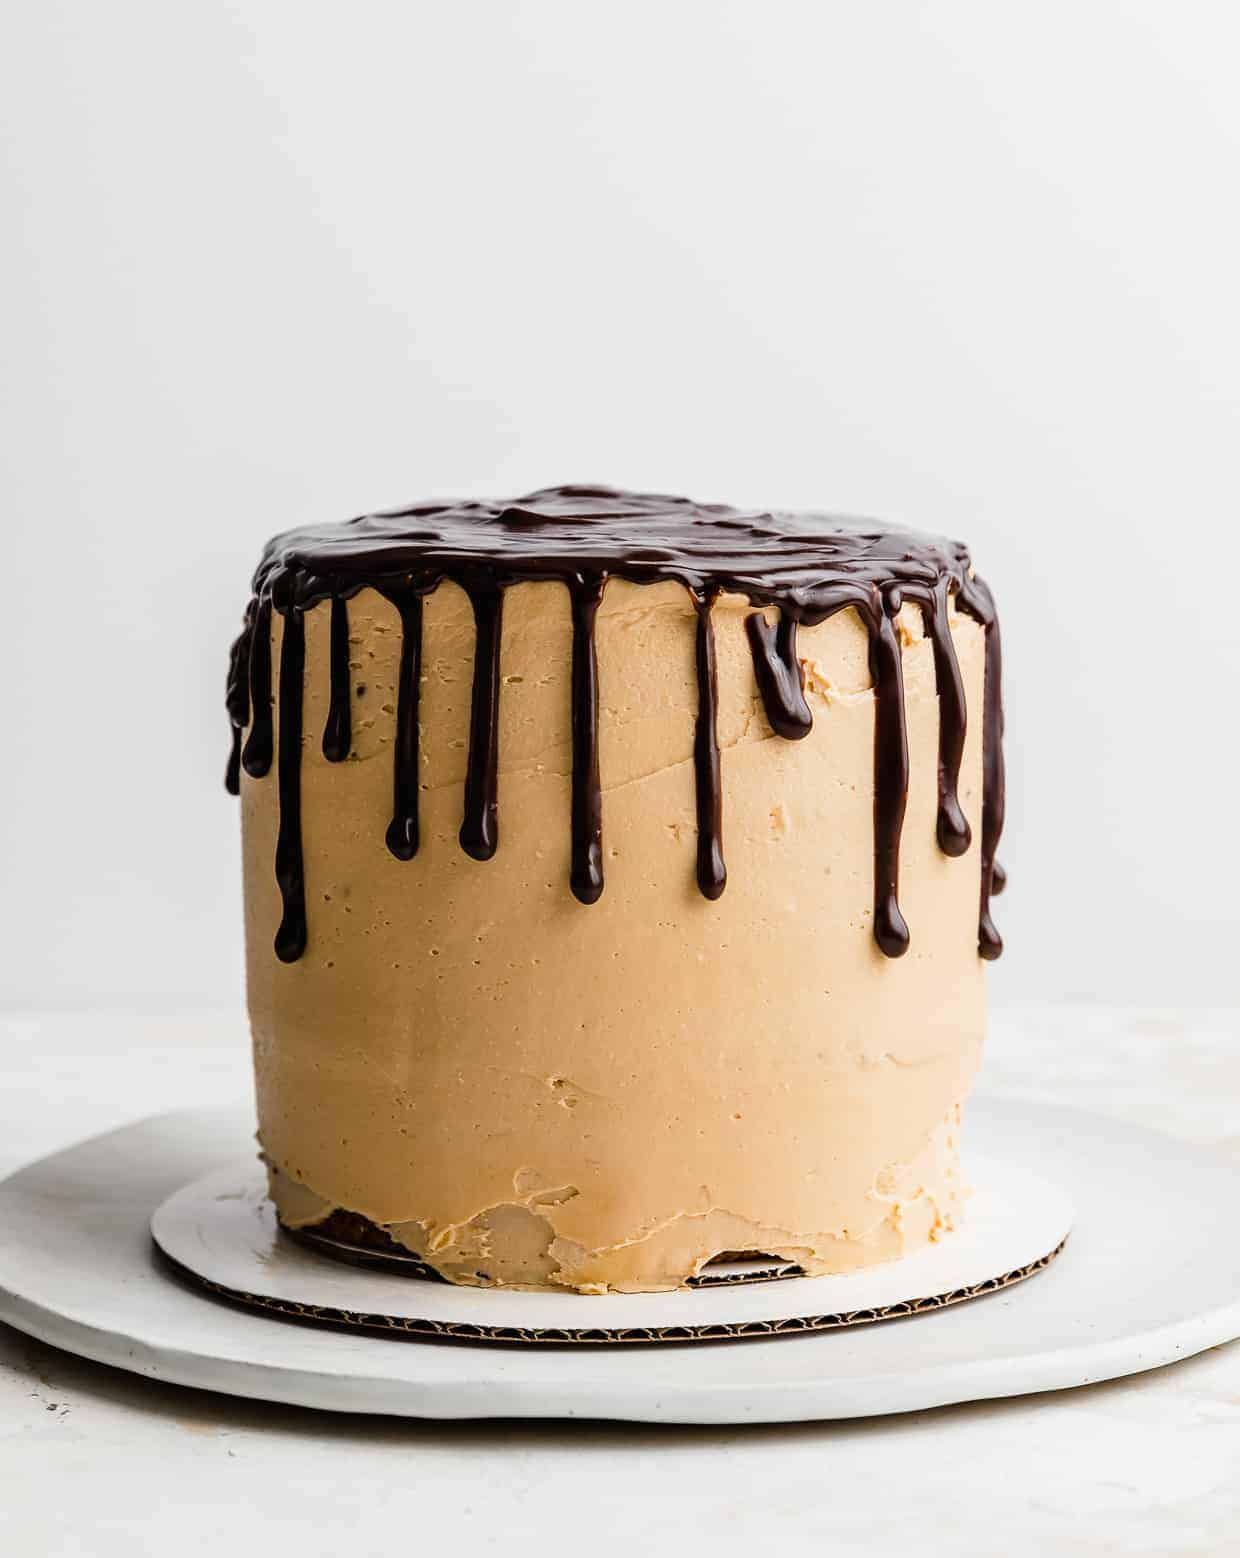 A butterscotch buttercream covered 7 Layer Bar Cake with a chocolate drip going down the sides.